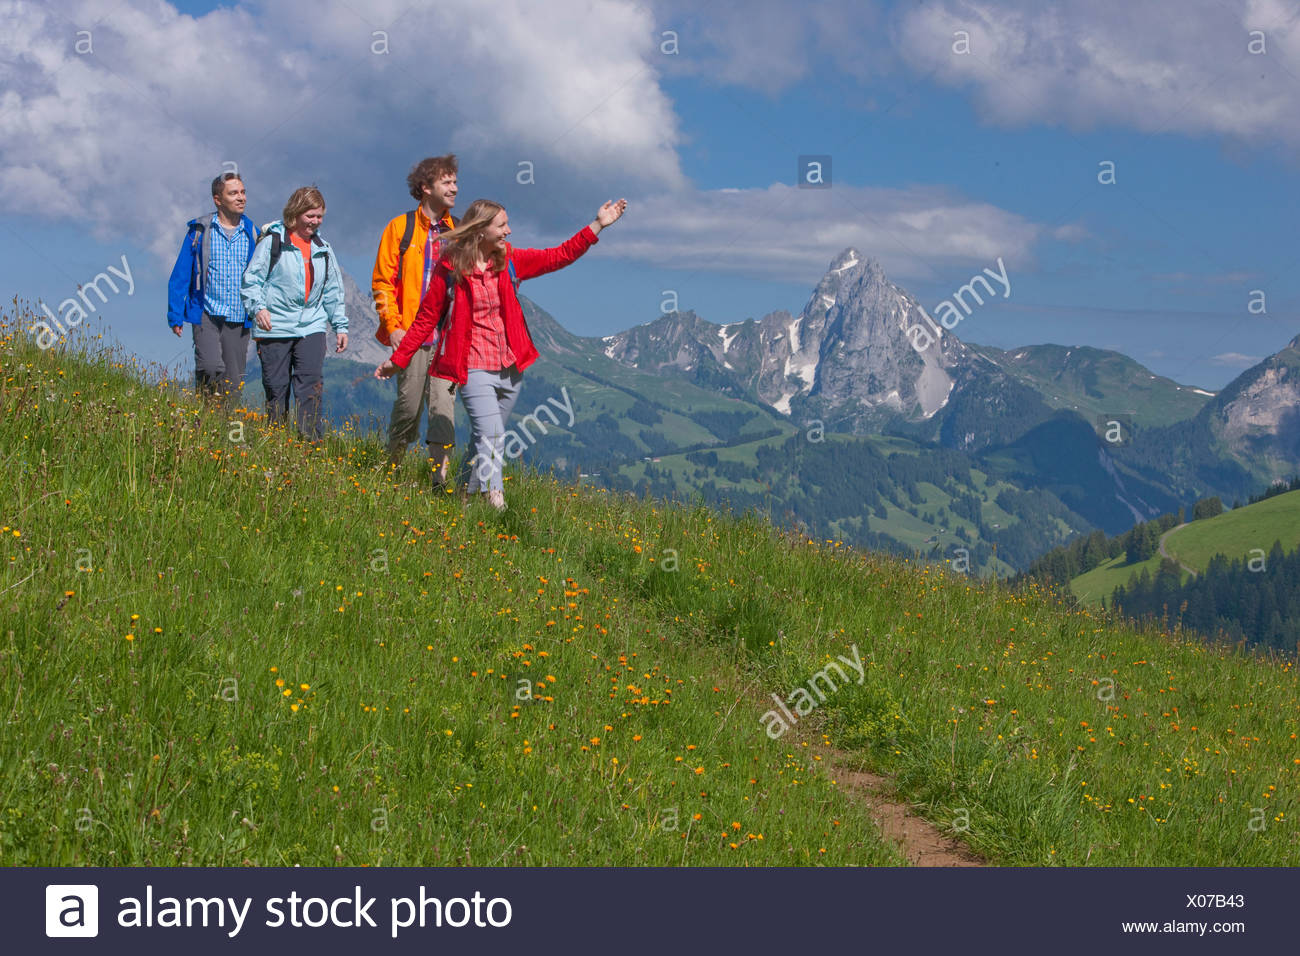 Traveller, Saanenland, Gstaad, canton, Bern, mountain, mountains, couple, Couples, summer sport, footpath, walking, hiking, trek - Stock Image